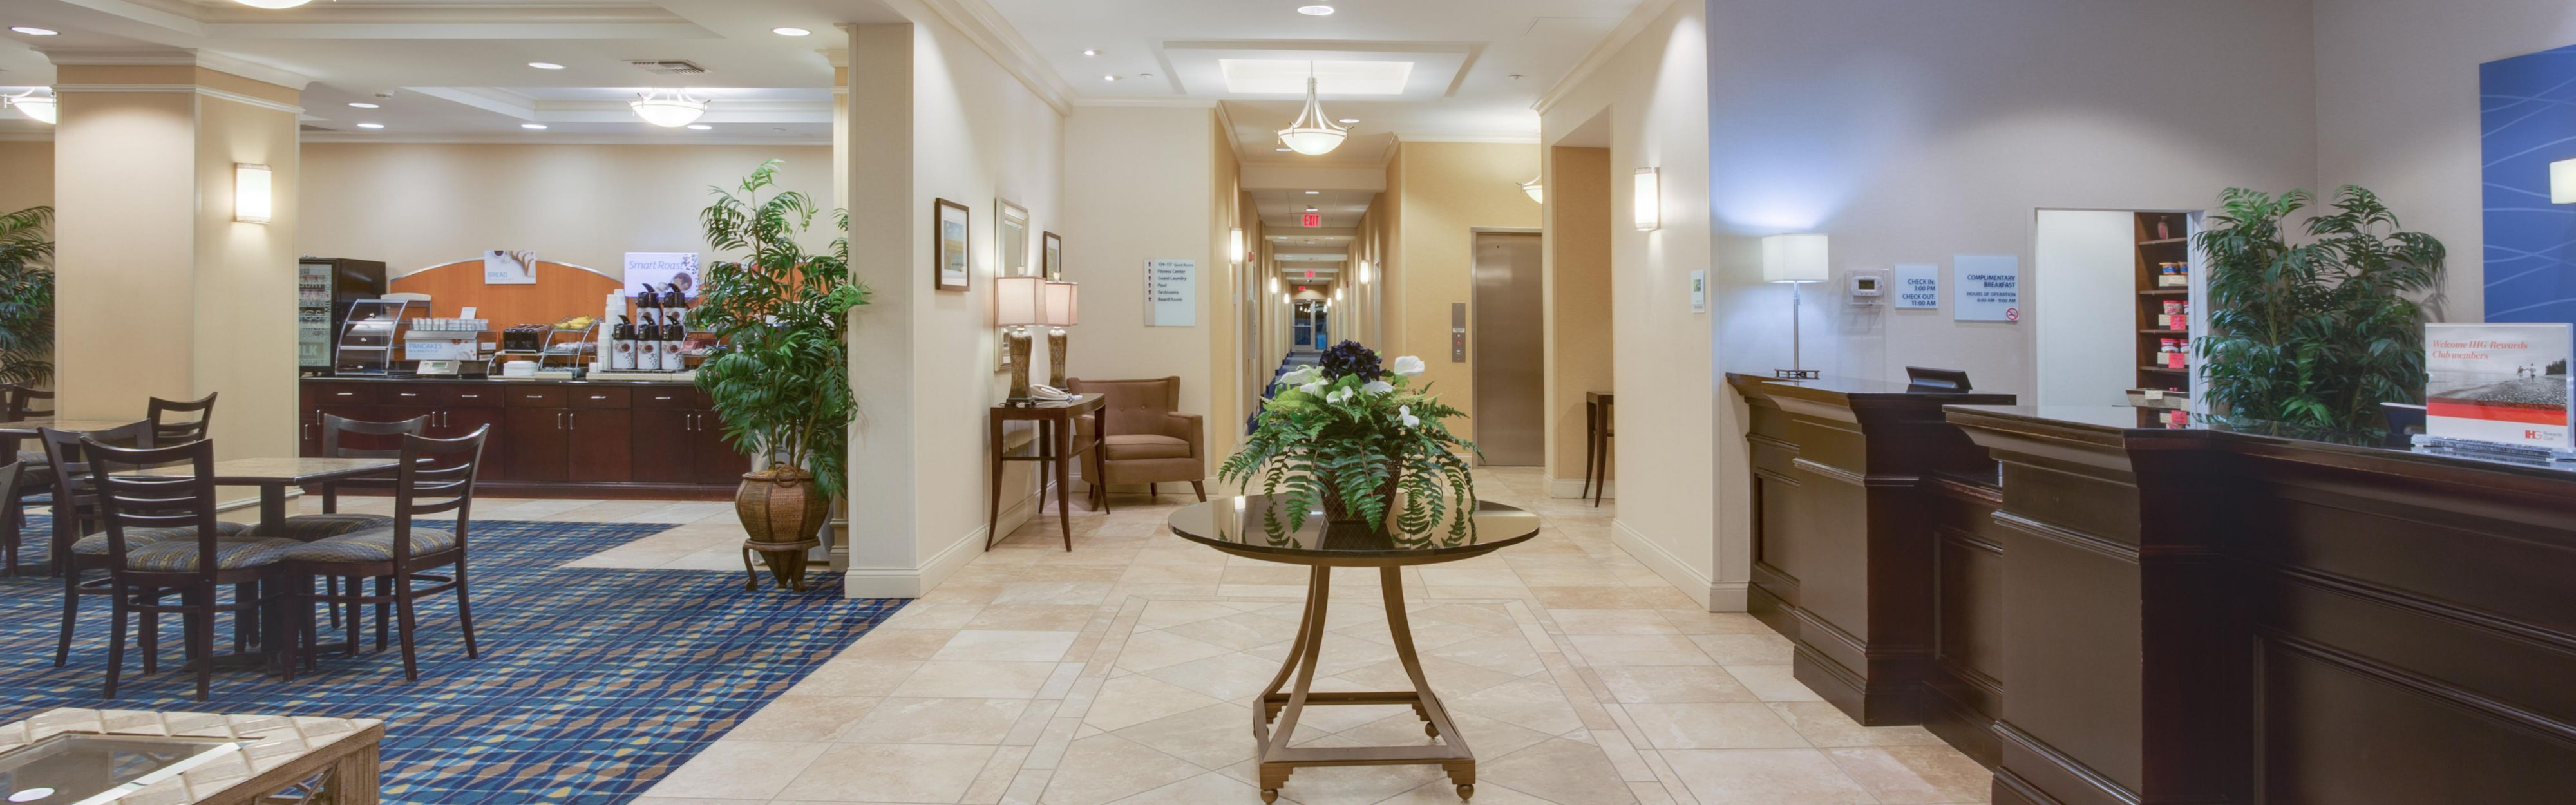 Our Inviting Hotel Entrance; Relax In Our Comfortable Hotel Lobby ...